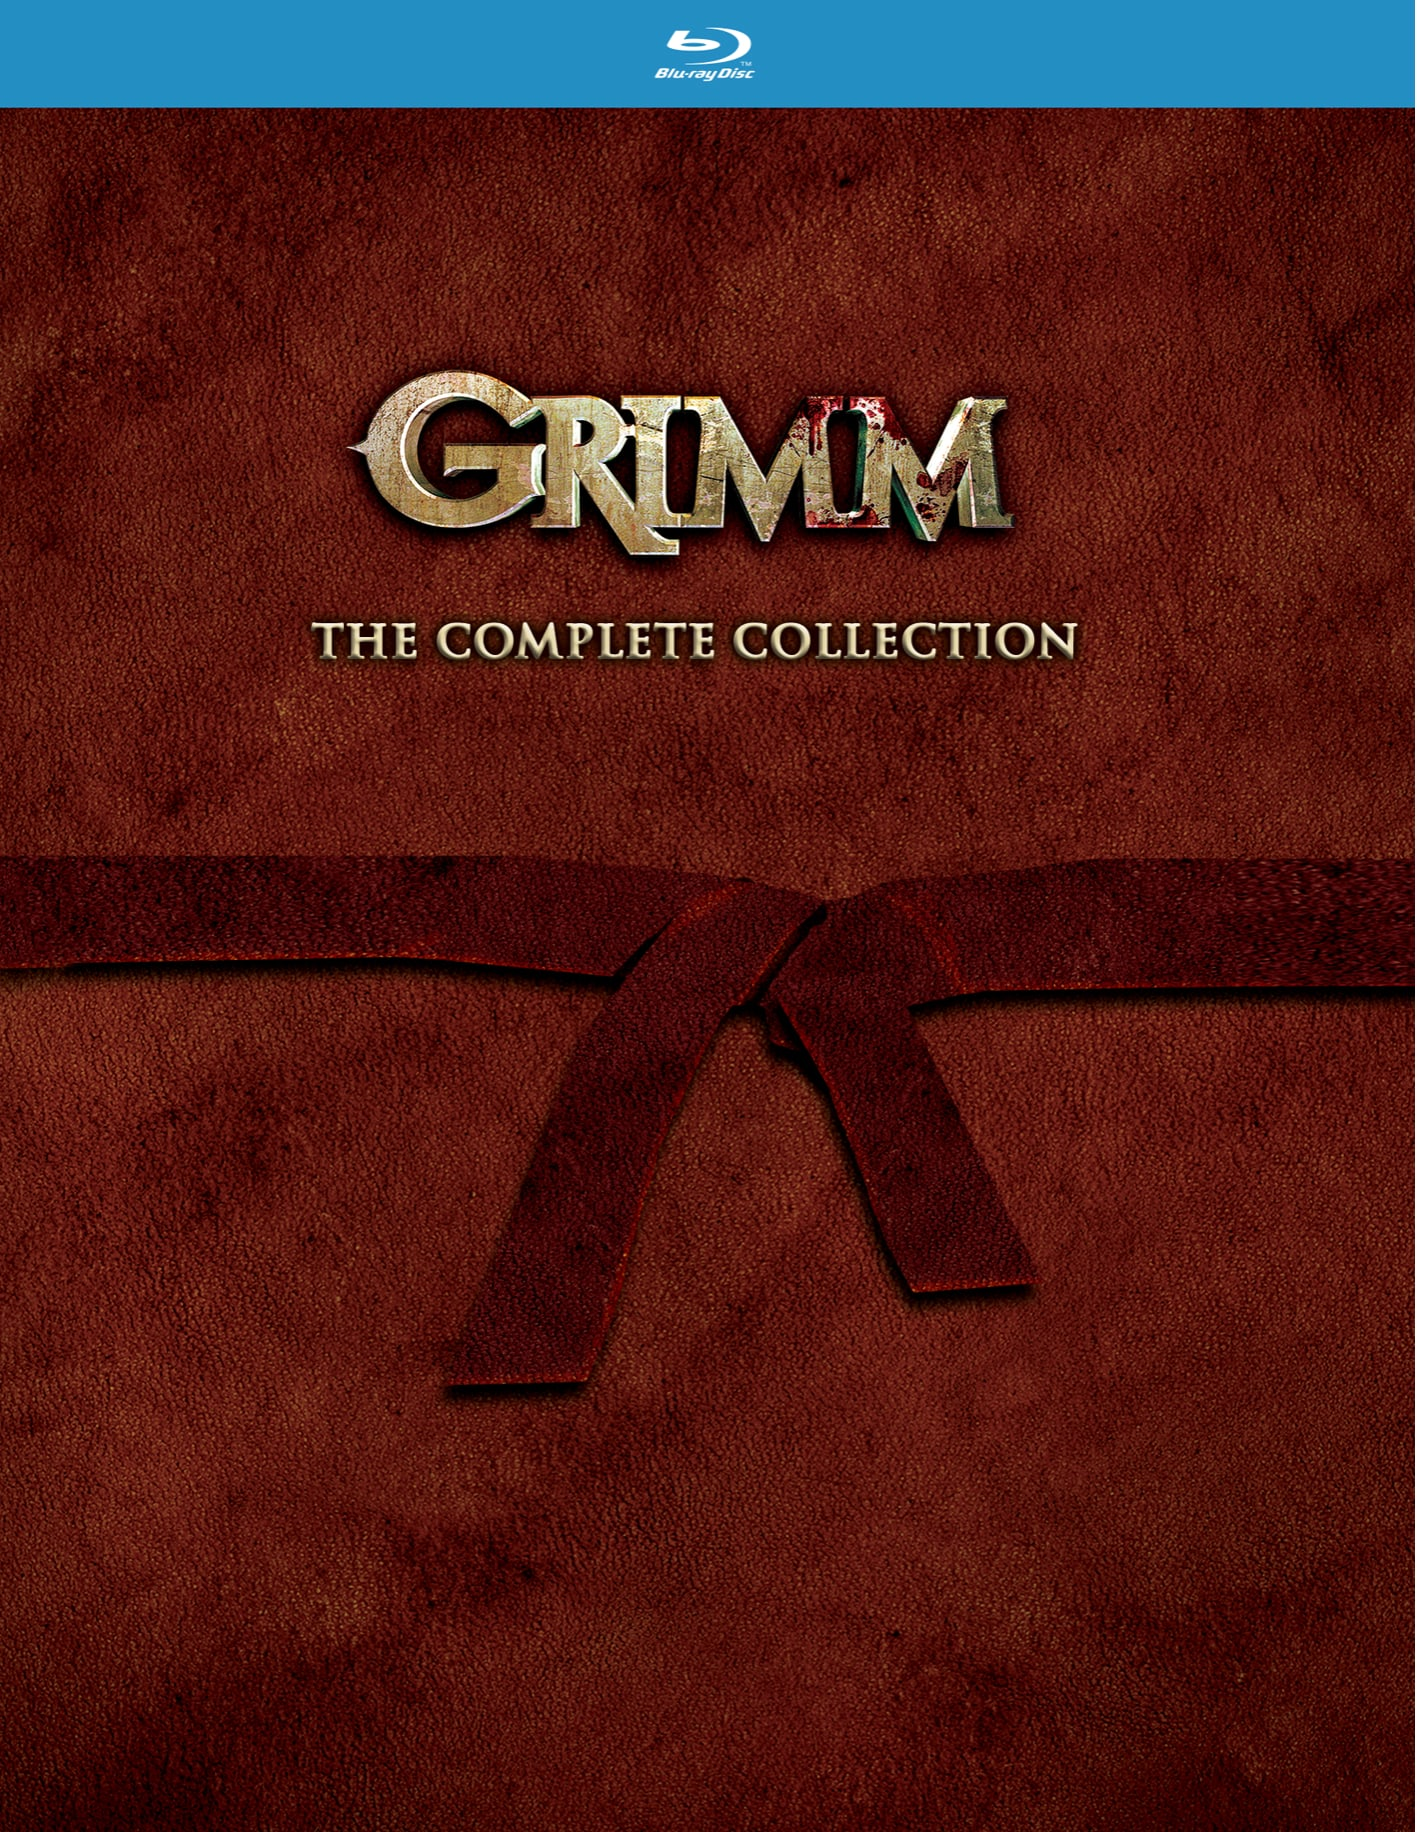 Grimm: The Complete Collection (2017) [Blu-ray]